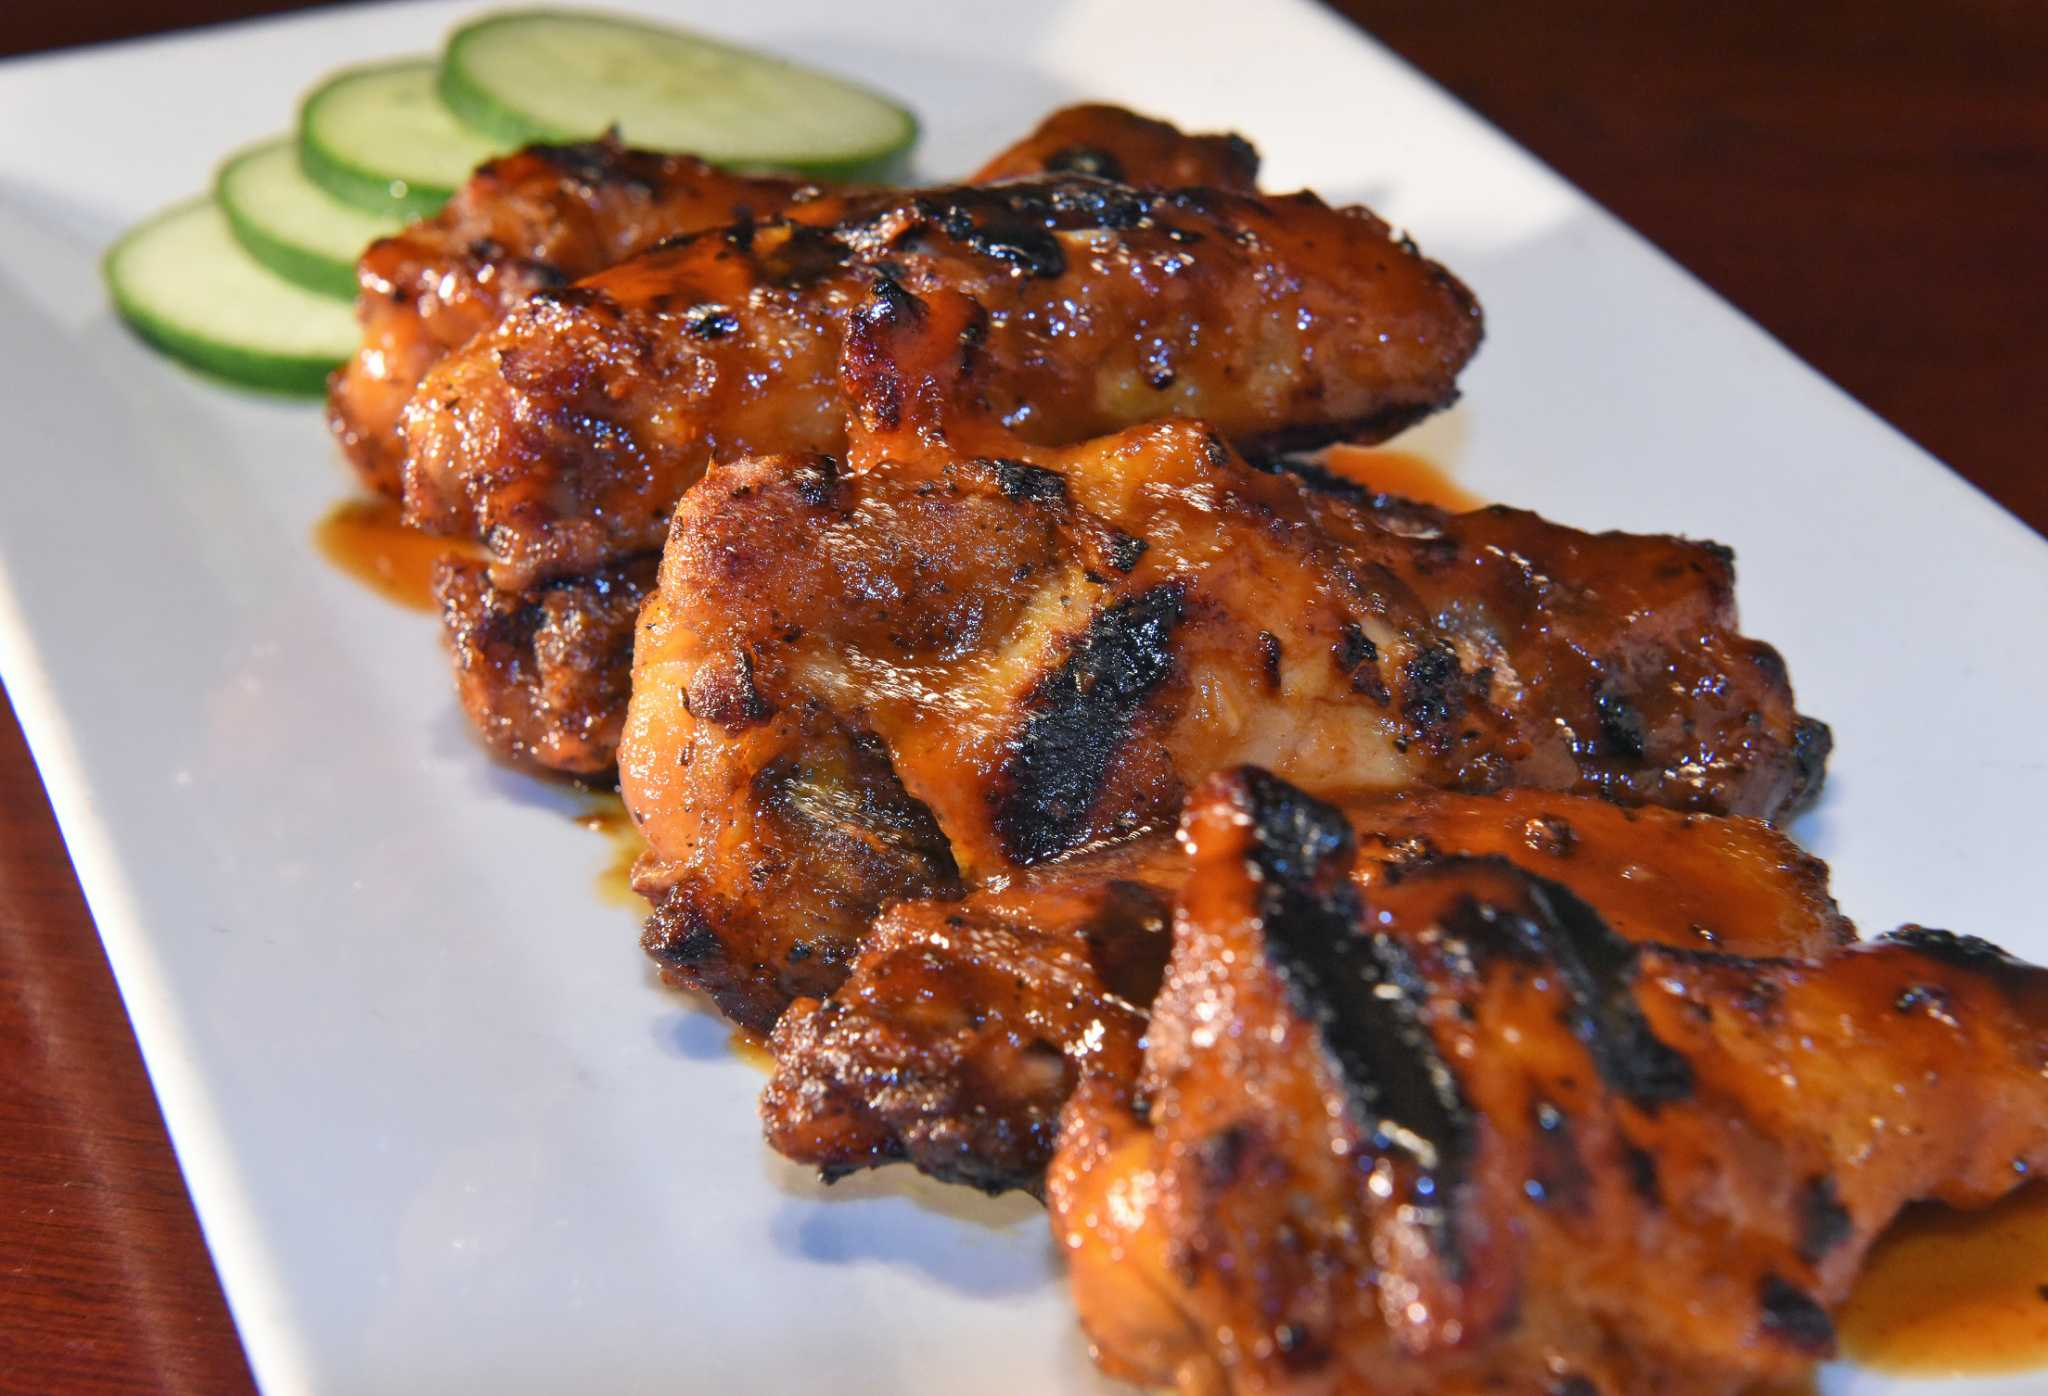 Capital Region dishes to make your mouth water - Times Union